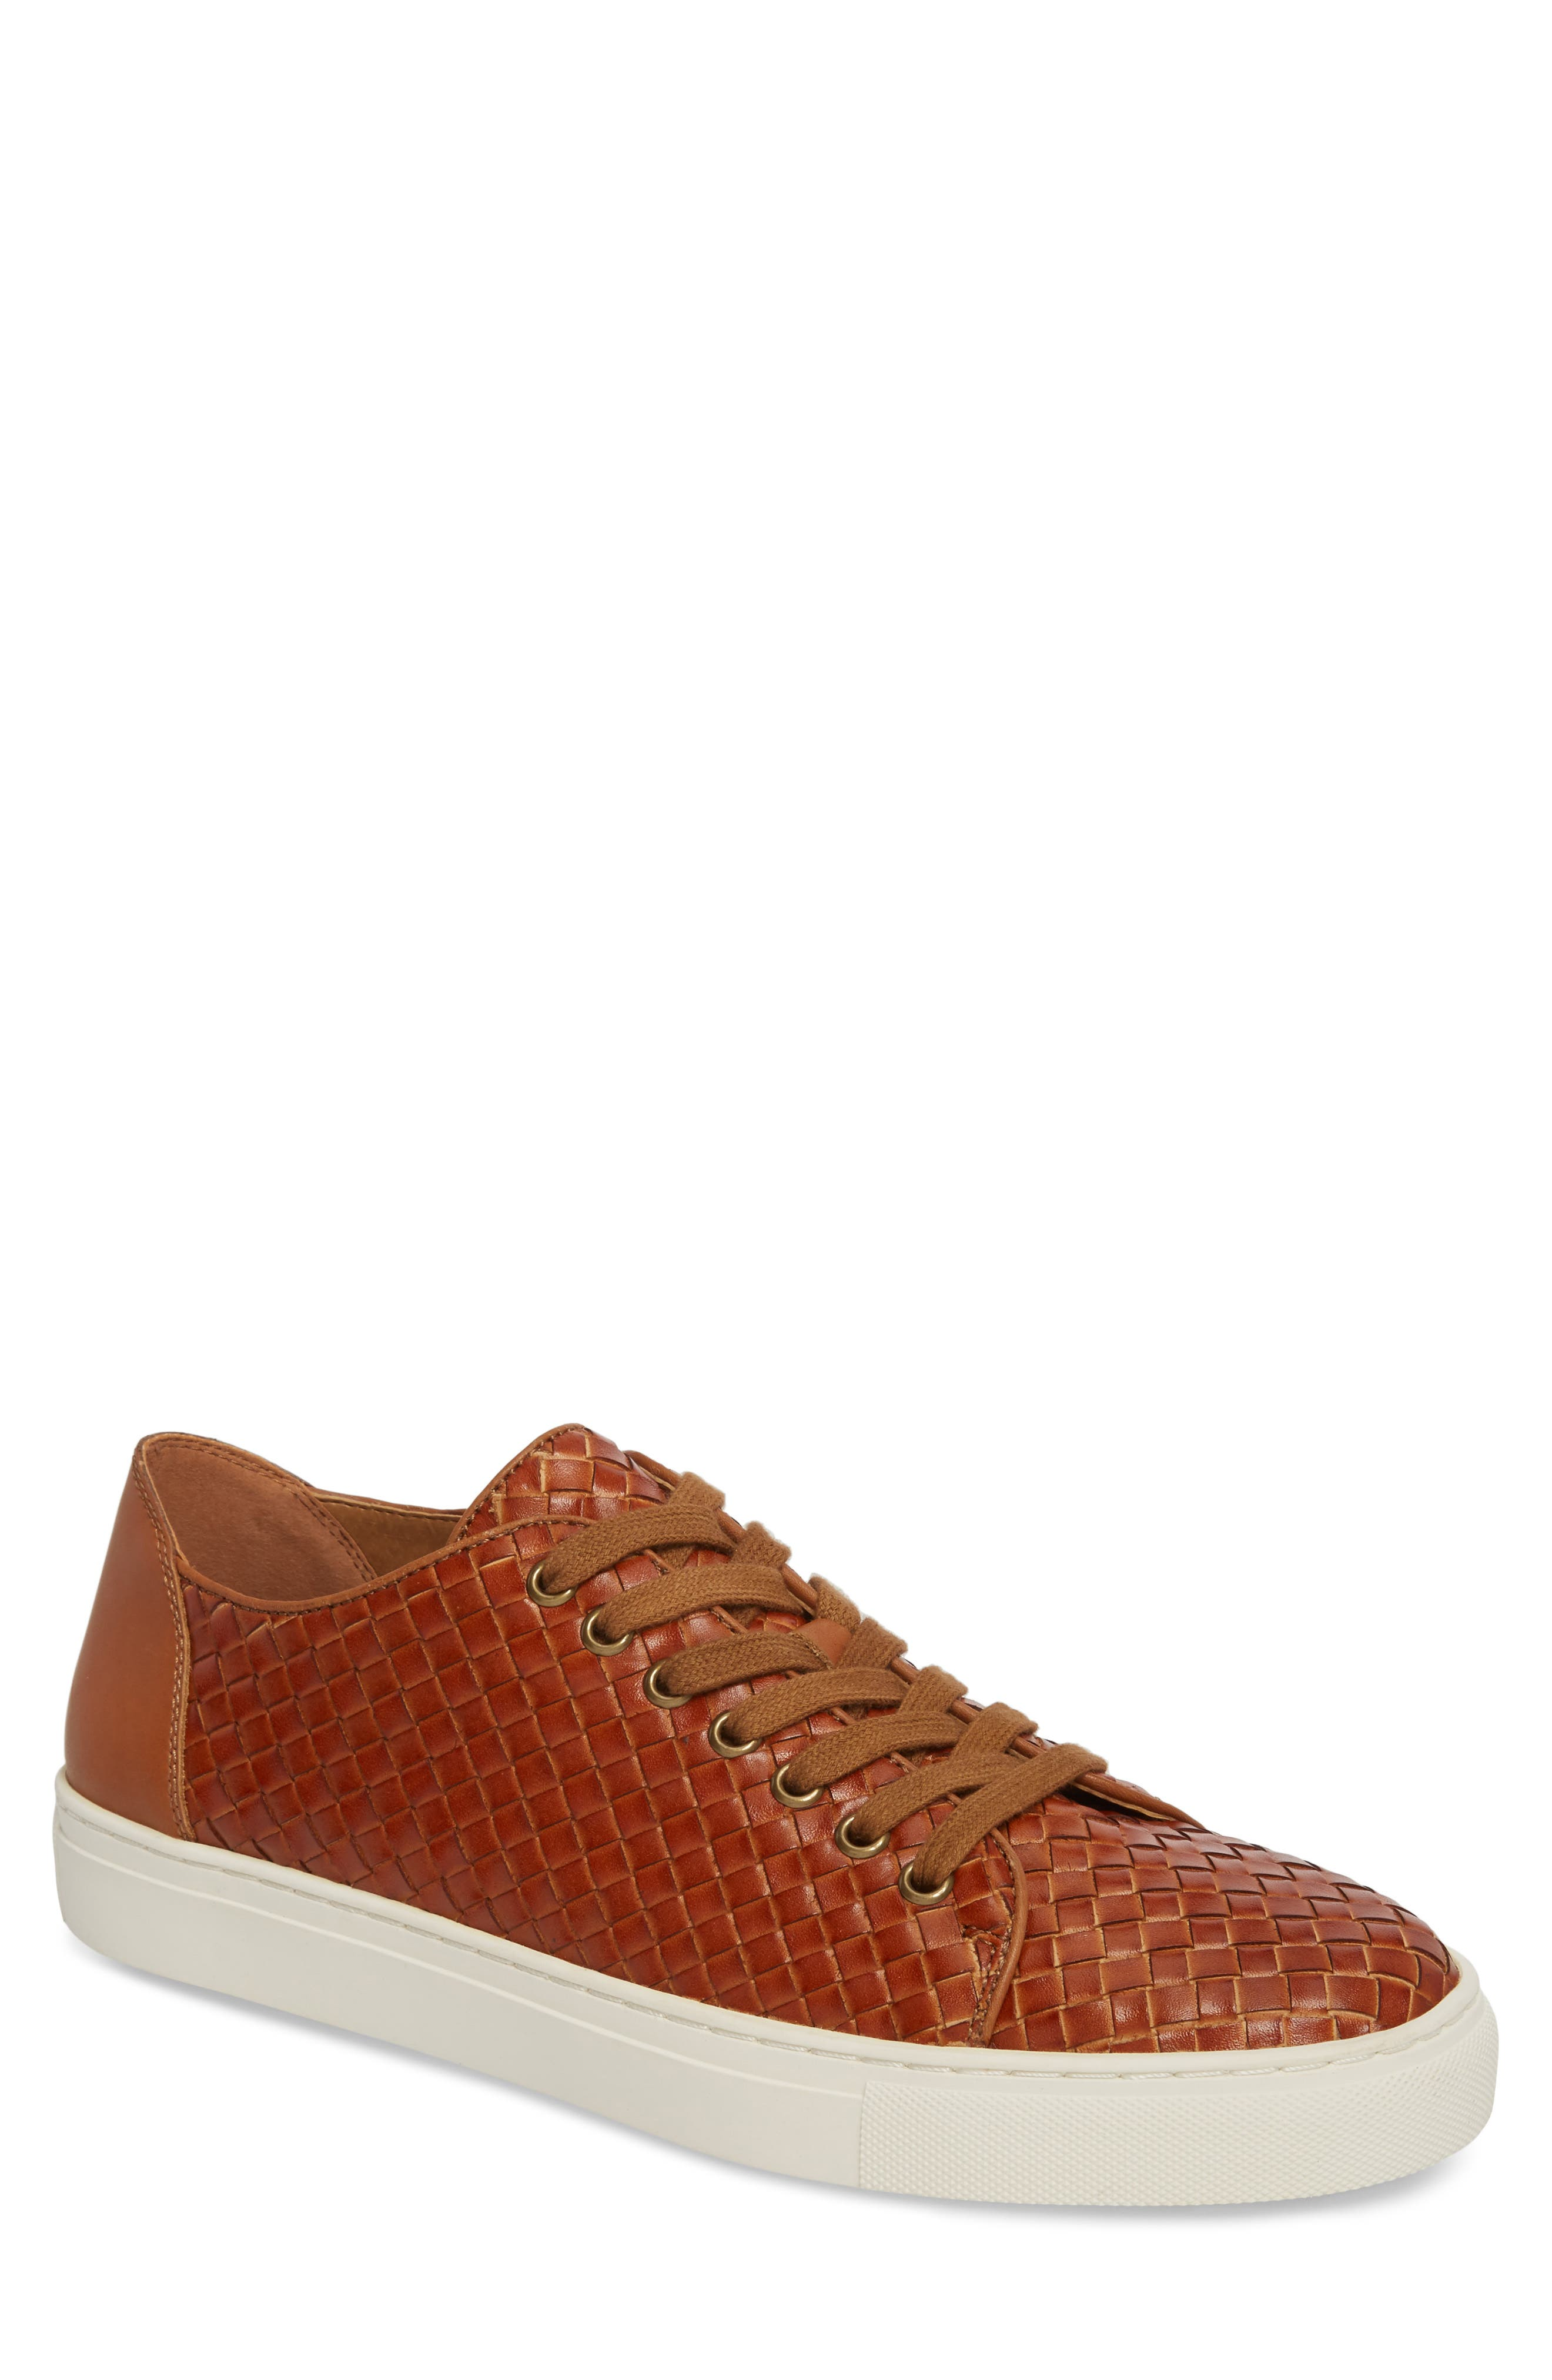 Alto Woven Low Top Sneaker,                             Main thumbnail 1, color,                             Saddle Leather